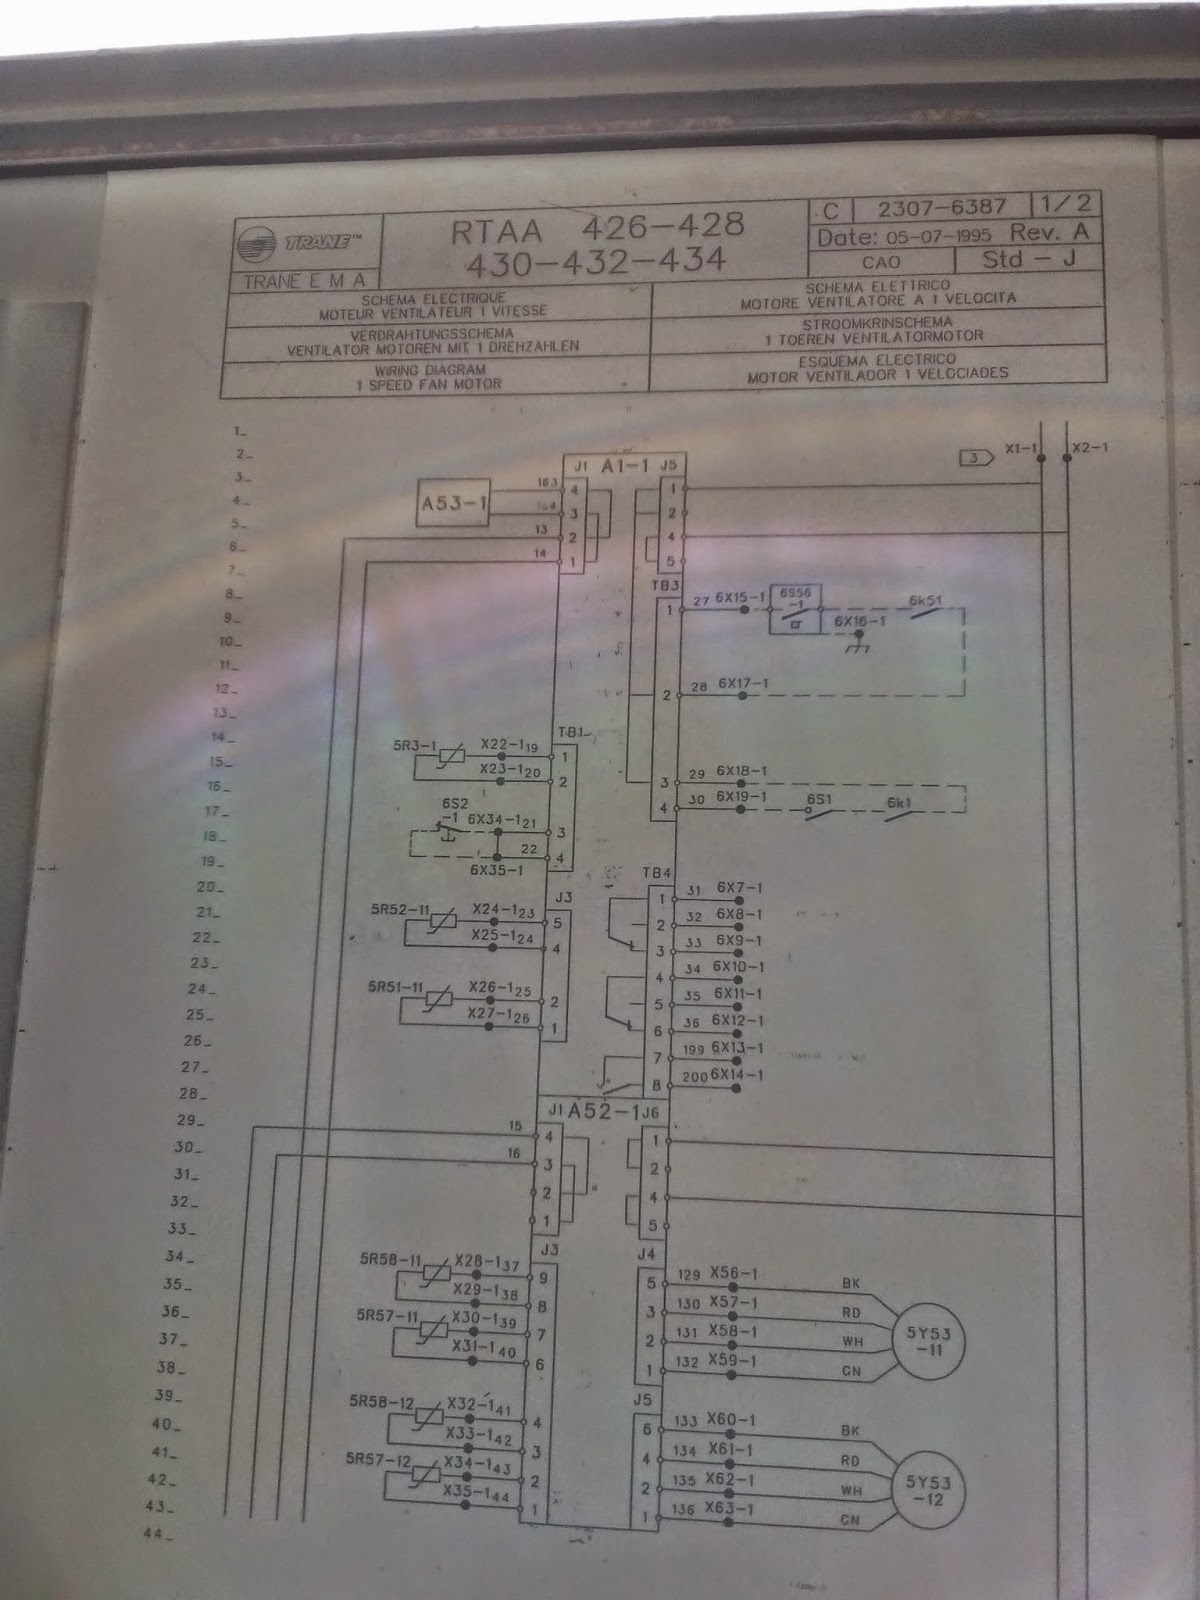 hight resolution of trane chiller air cooled control wiring diagram rtaa series